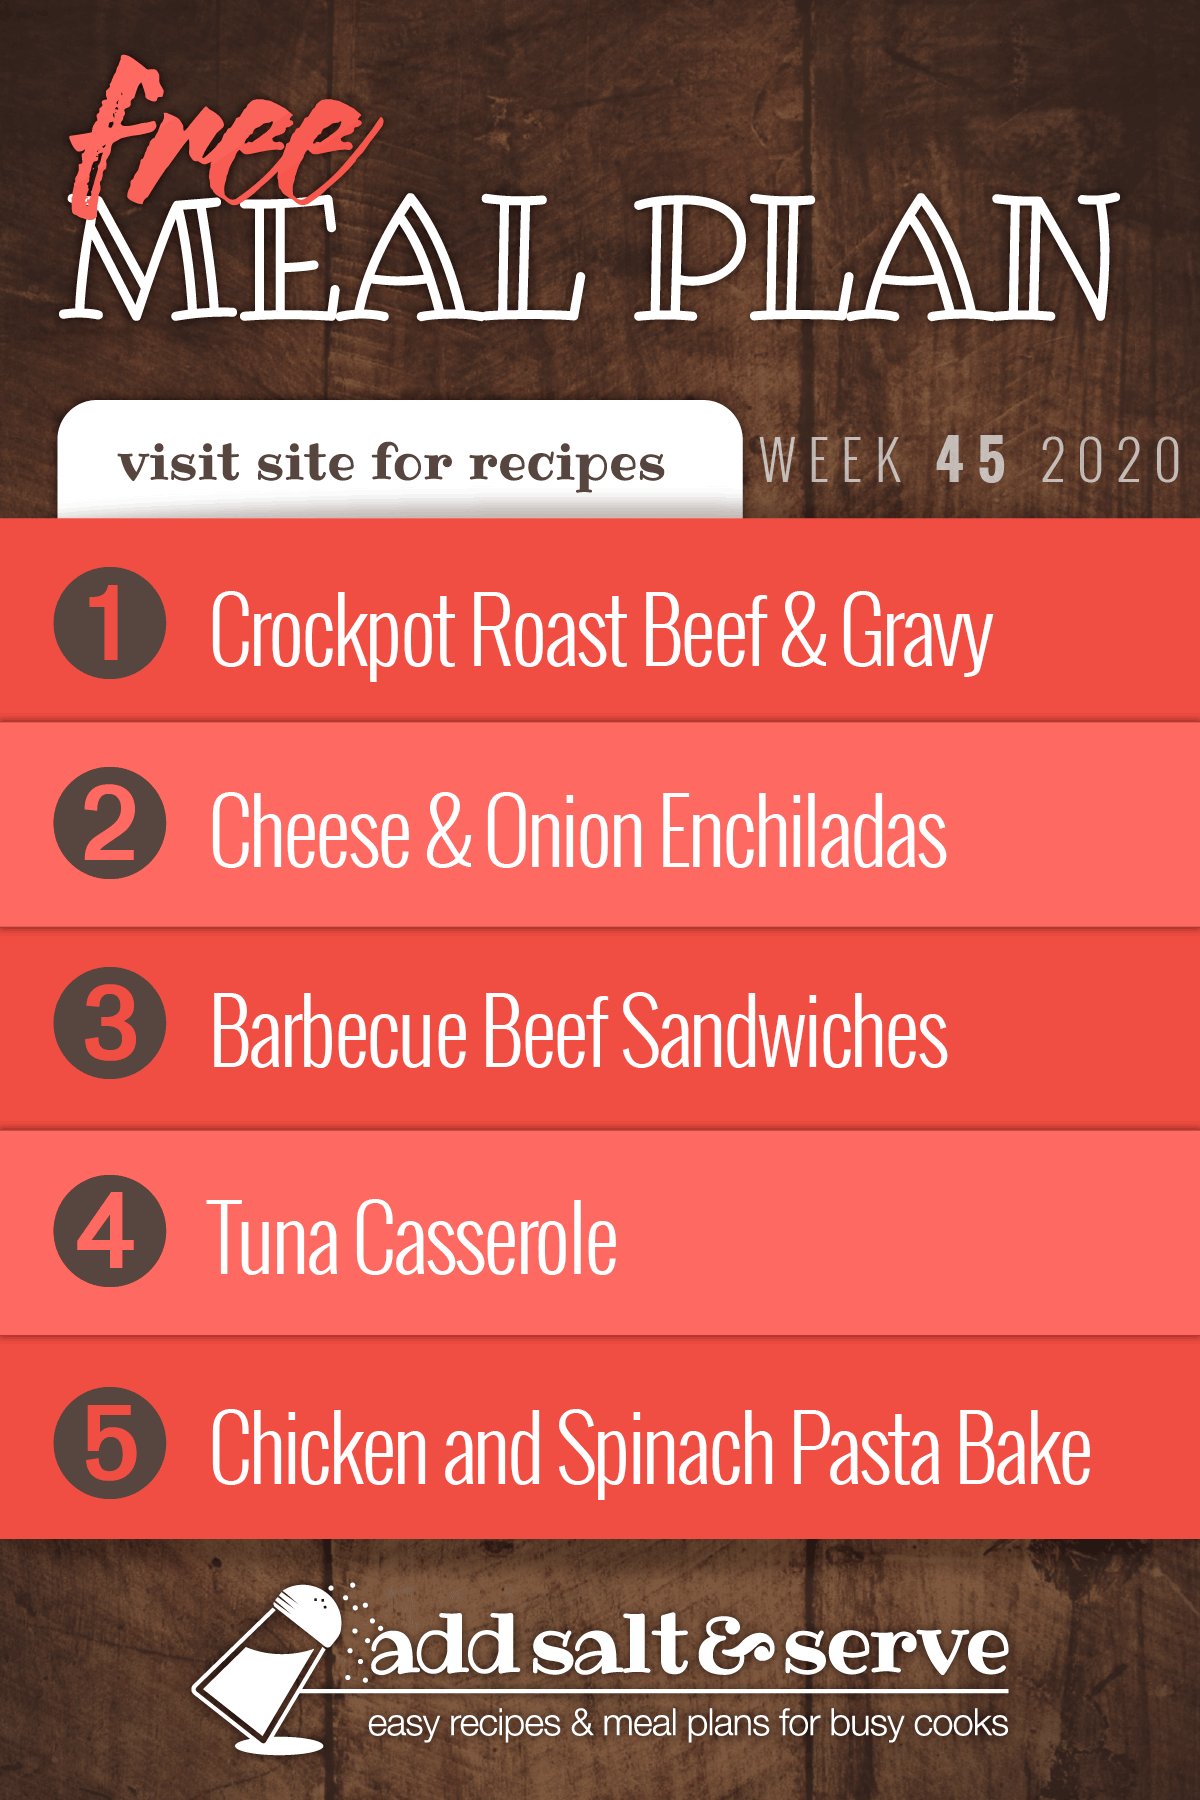 Free Meal Plan for Week 45 2020: Crockpot Roast Beef & Gravy, Cheese & Onion Enchiladas, Barbecue Beef Sandwiches, Tuna Casserole, Chicken and Spinach Pasta Bake - visit Add Salt & Serve for recipes